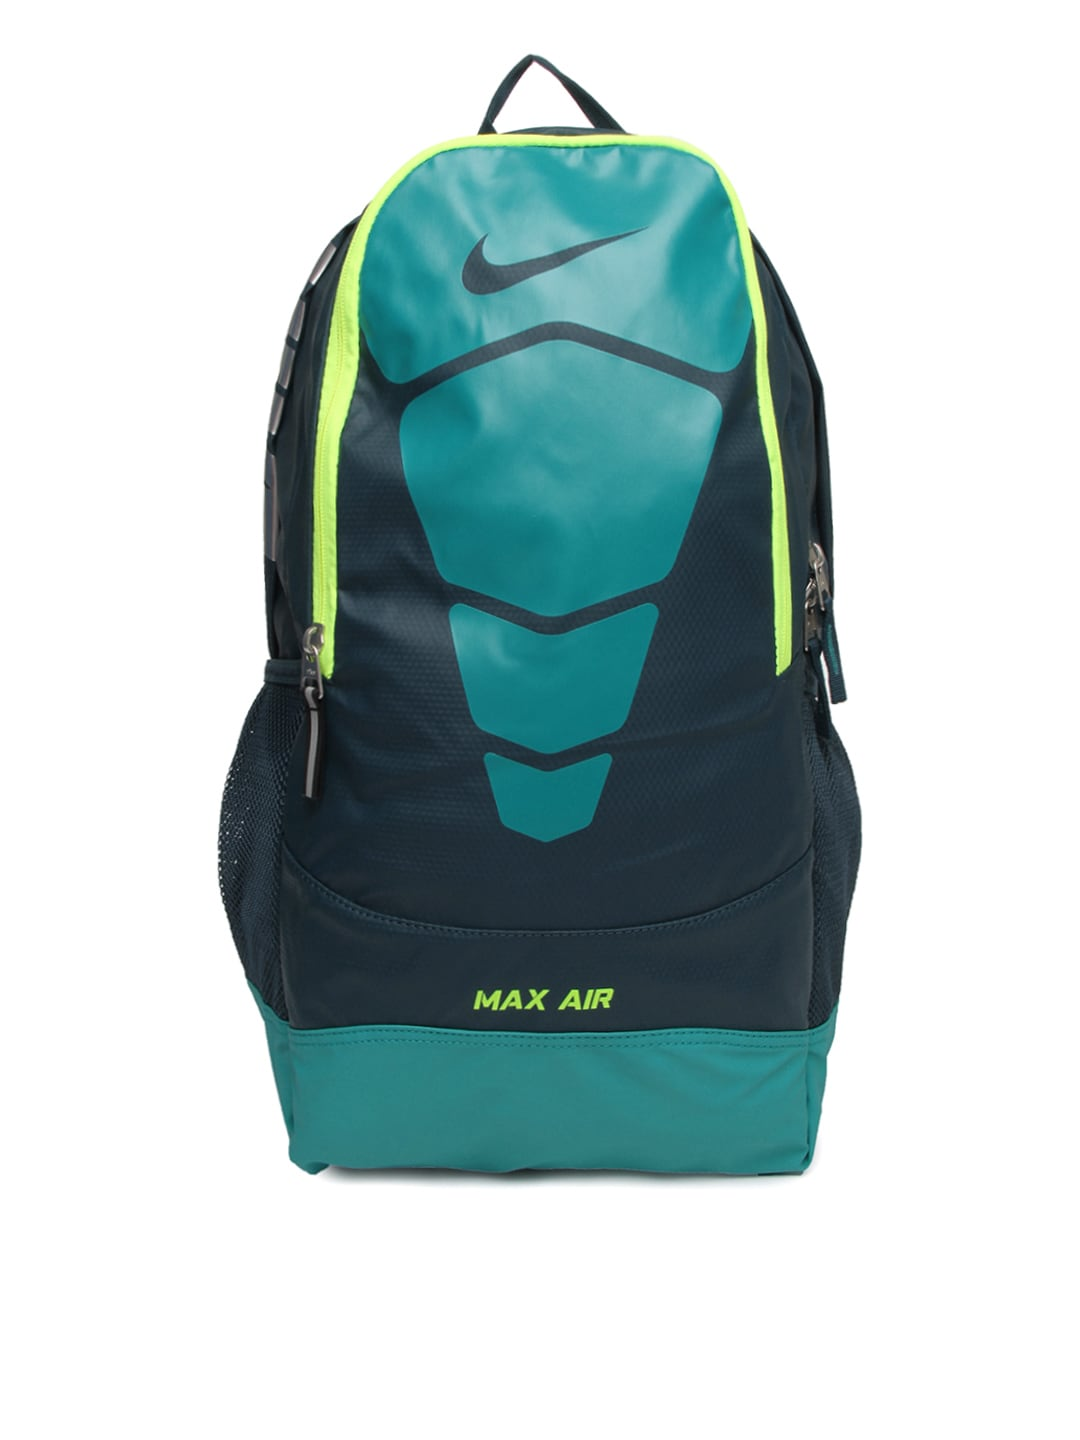 26216db2f9cb Nike ba4729-318 Unisex Teal Blue Vapor Max Air Backpack- Price in India